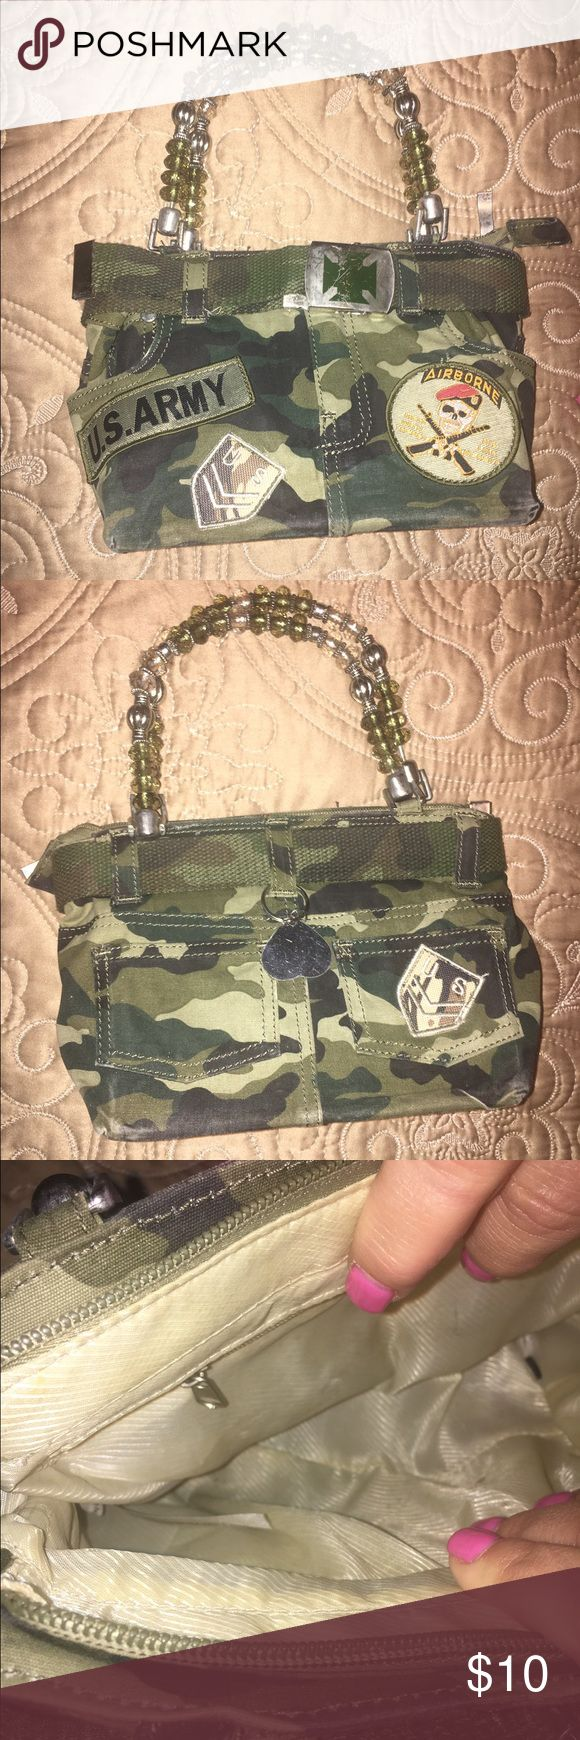 """U.S. Army Camo Bag U.S. Army Camo Bag with Airborne patch. Some wear to the front buckle. Great condition overall, barely used. 8"""" inches horizontal and 6.5"""" inches vertical. Bags Mini Bags"""